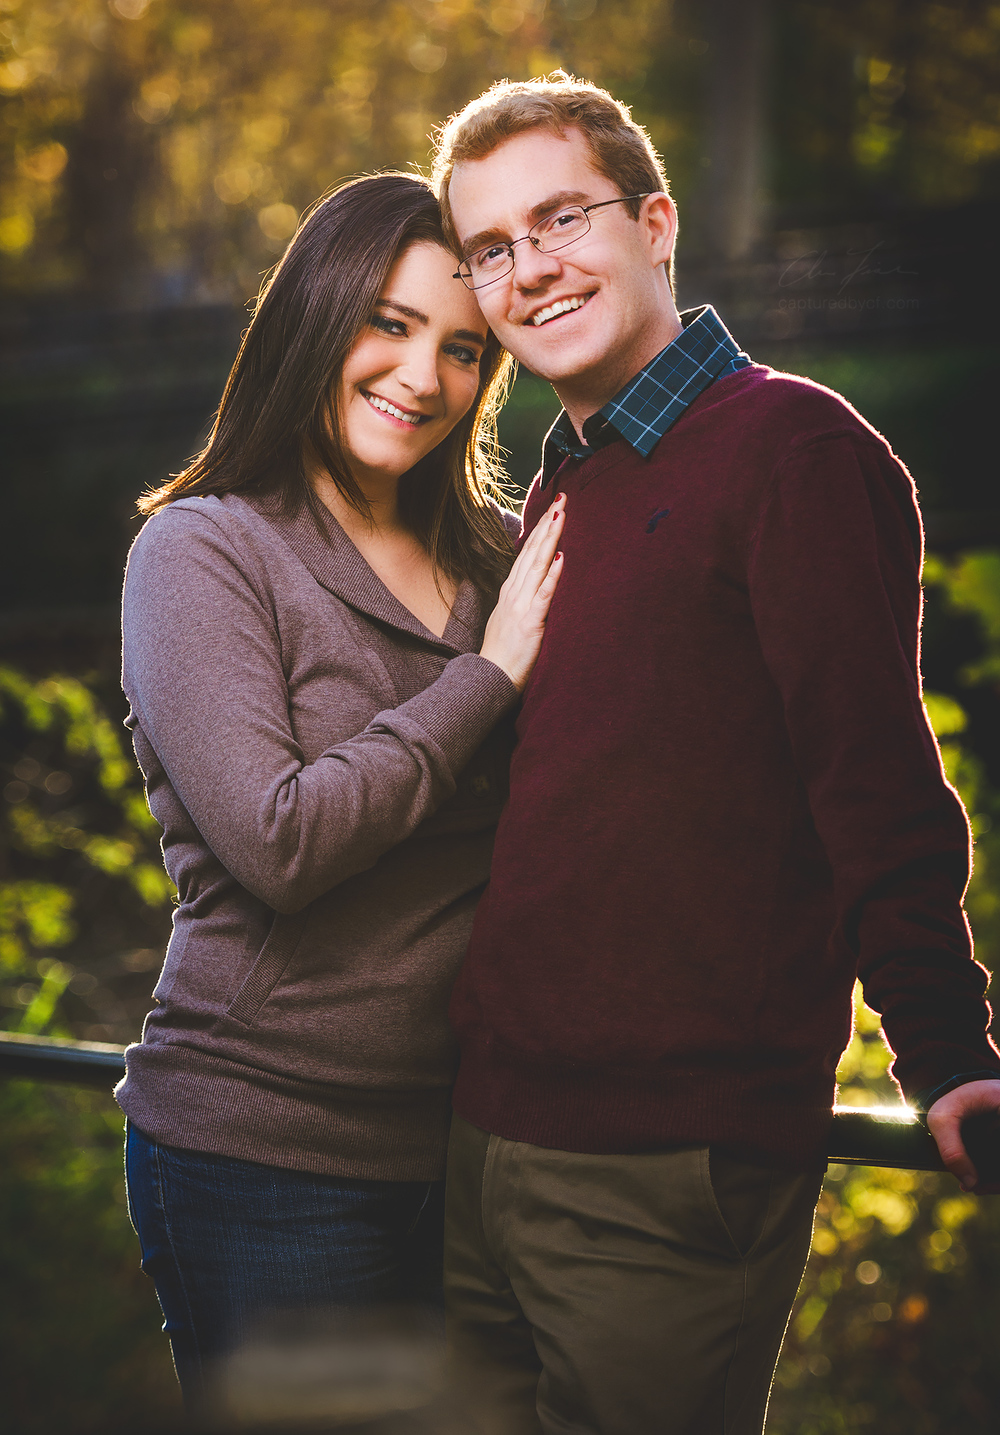 Katherine-Engagement-Photos-319.jpg